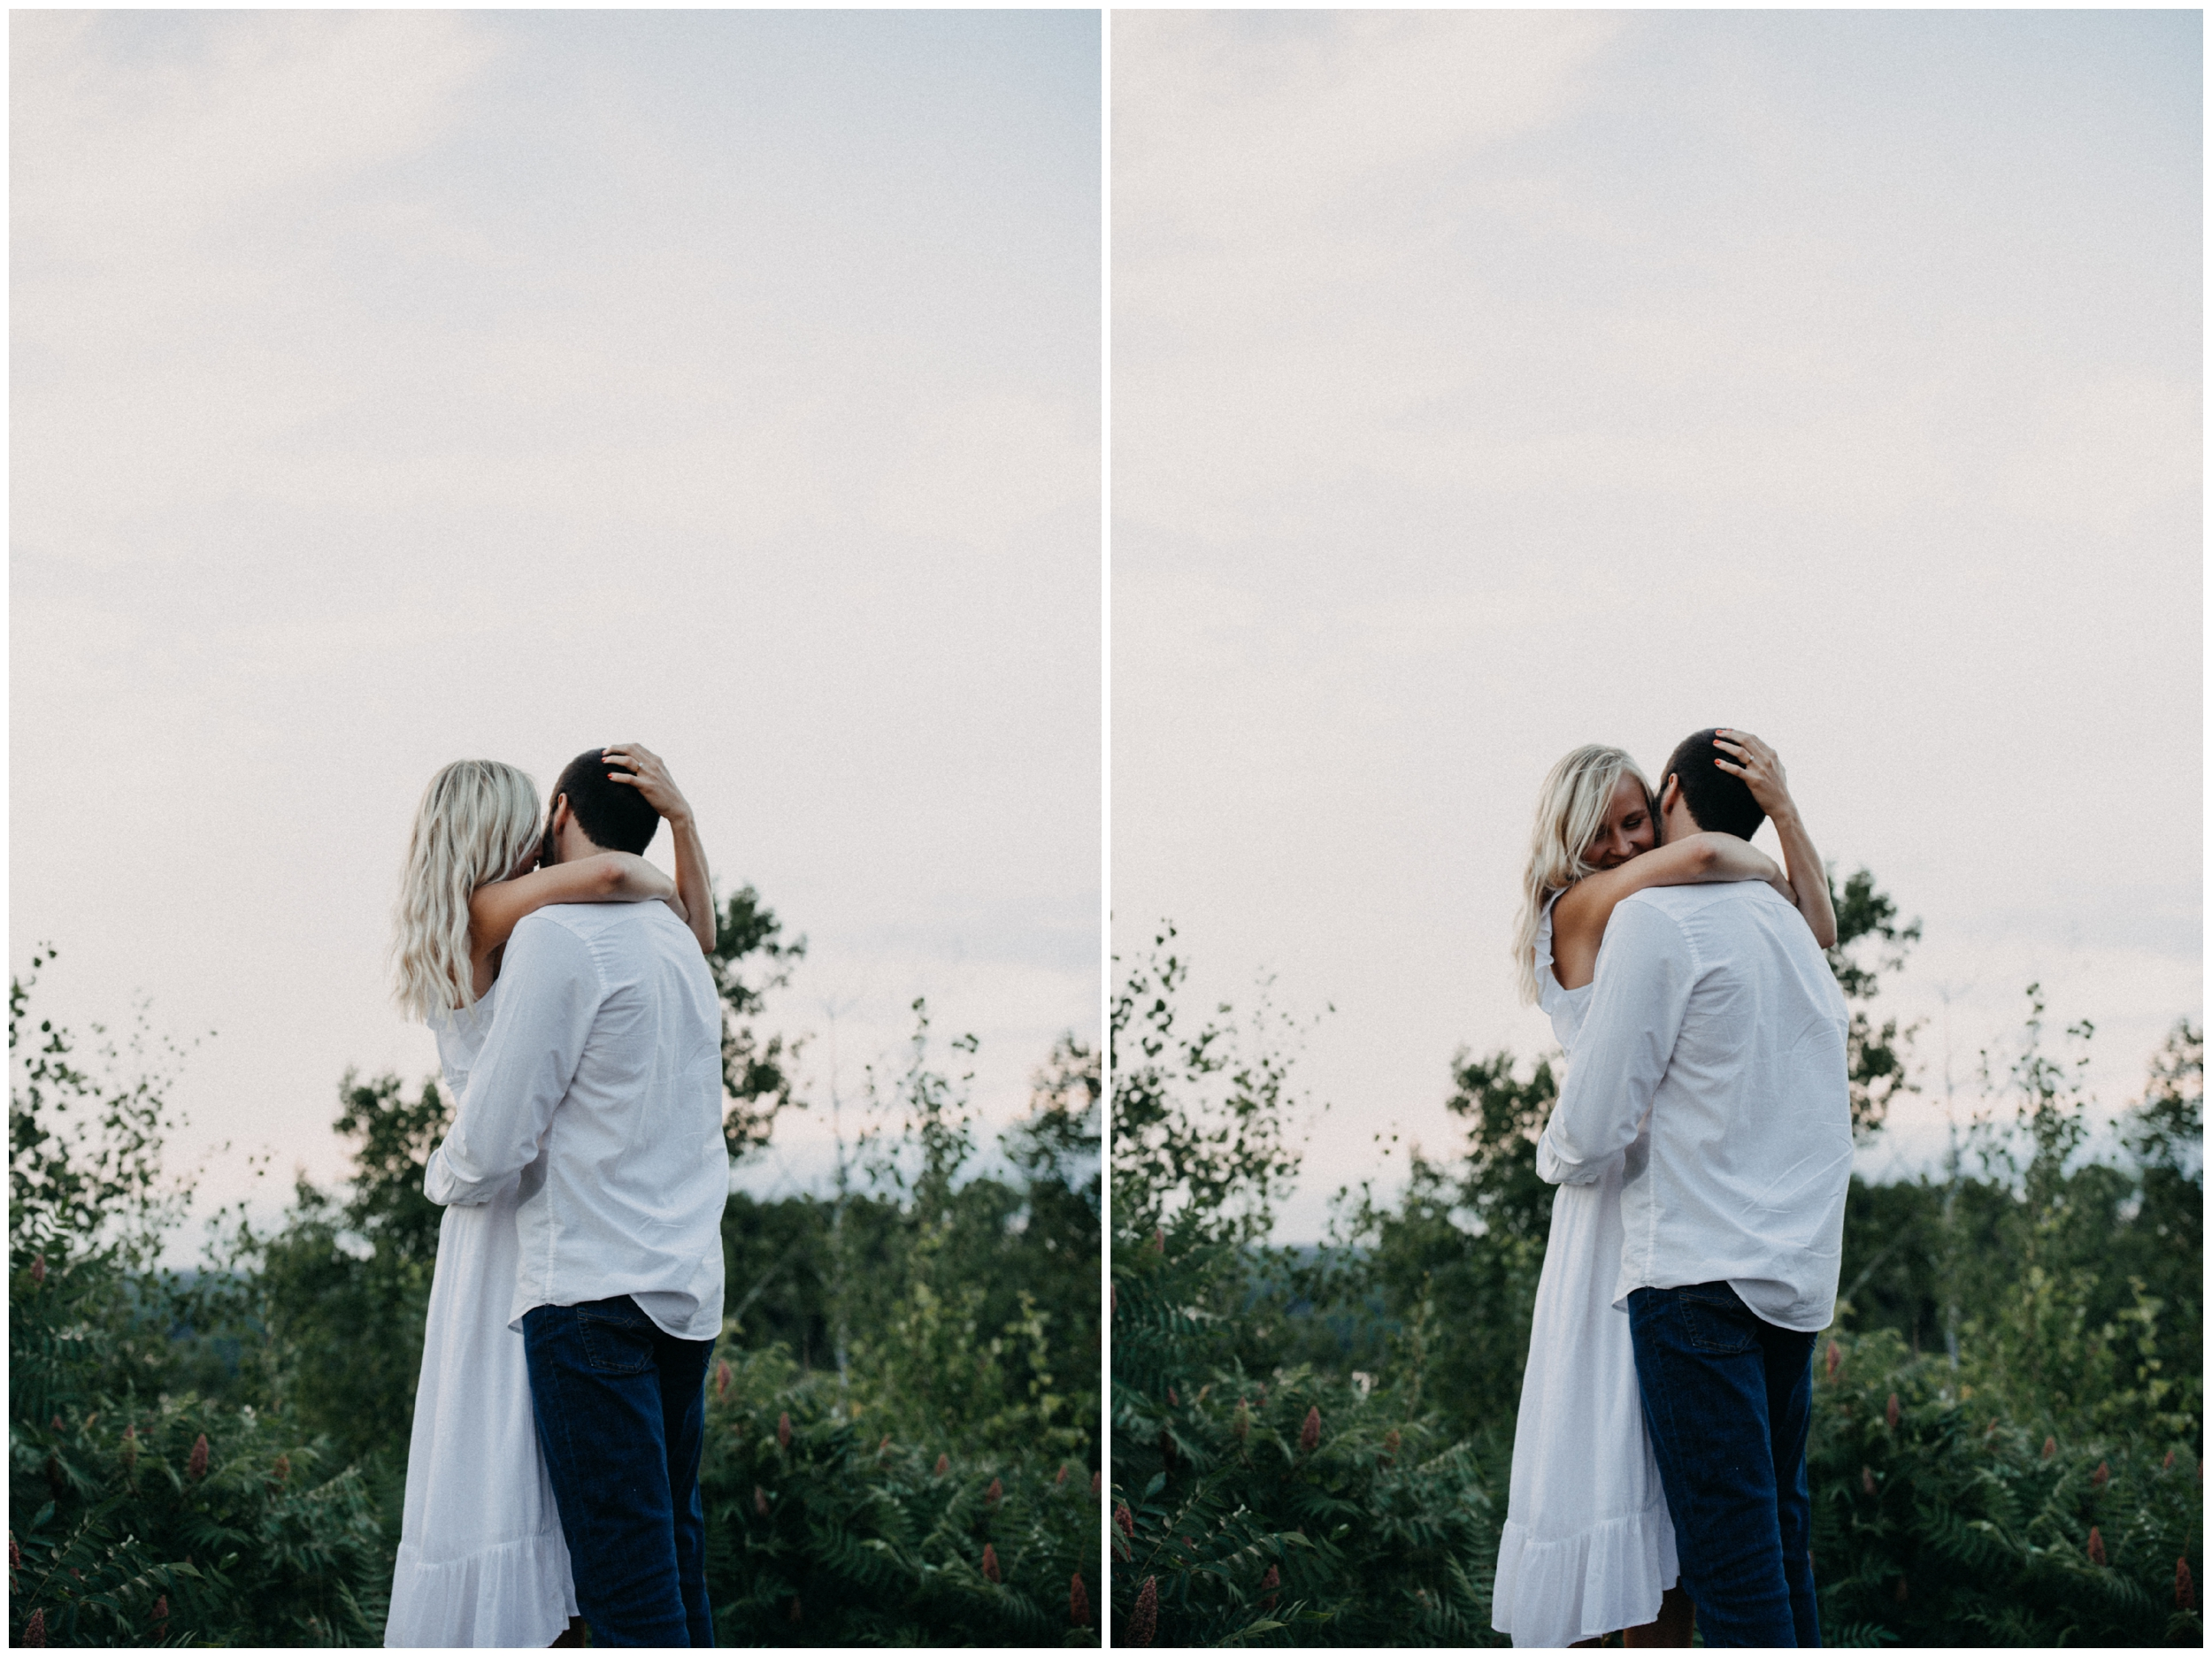 Intimate engagement session on Miner's mountain  wedding photographer Britt DeZeeuw